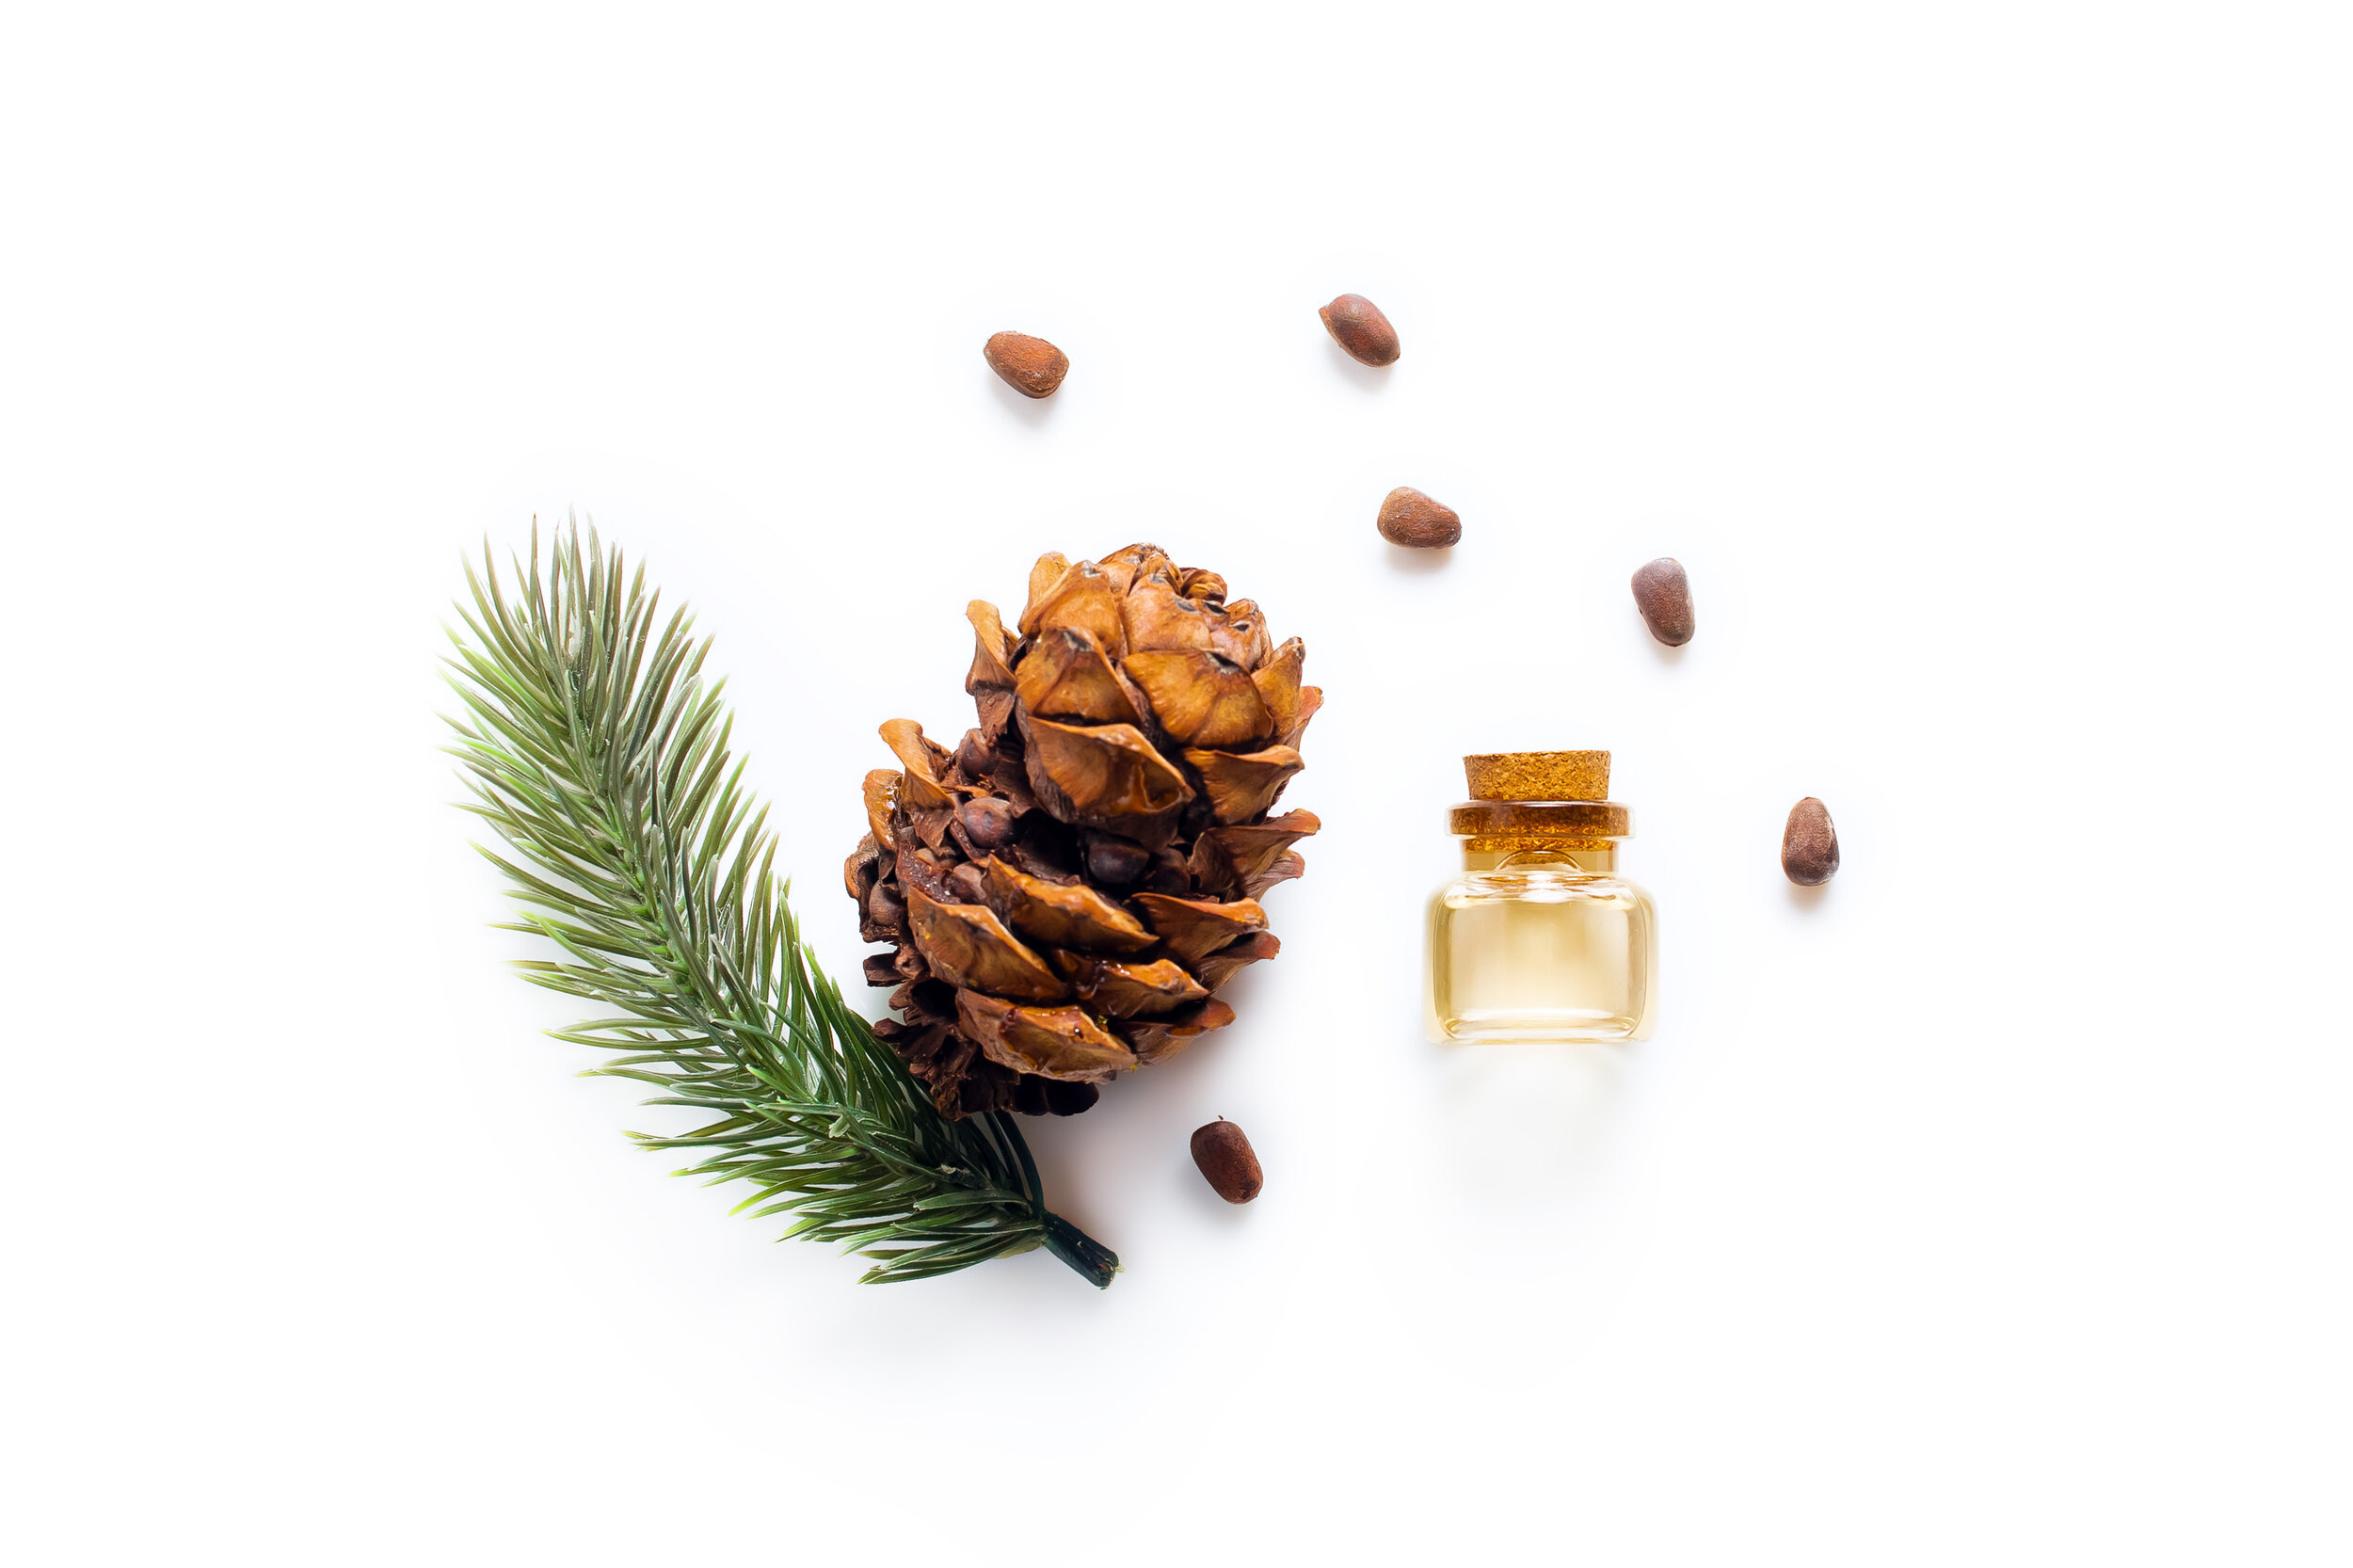 Cedar oil Bottles with pine oil and pine nuts, isolated on a white background